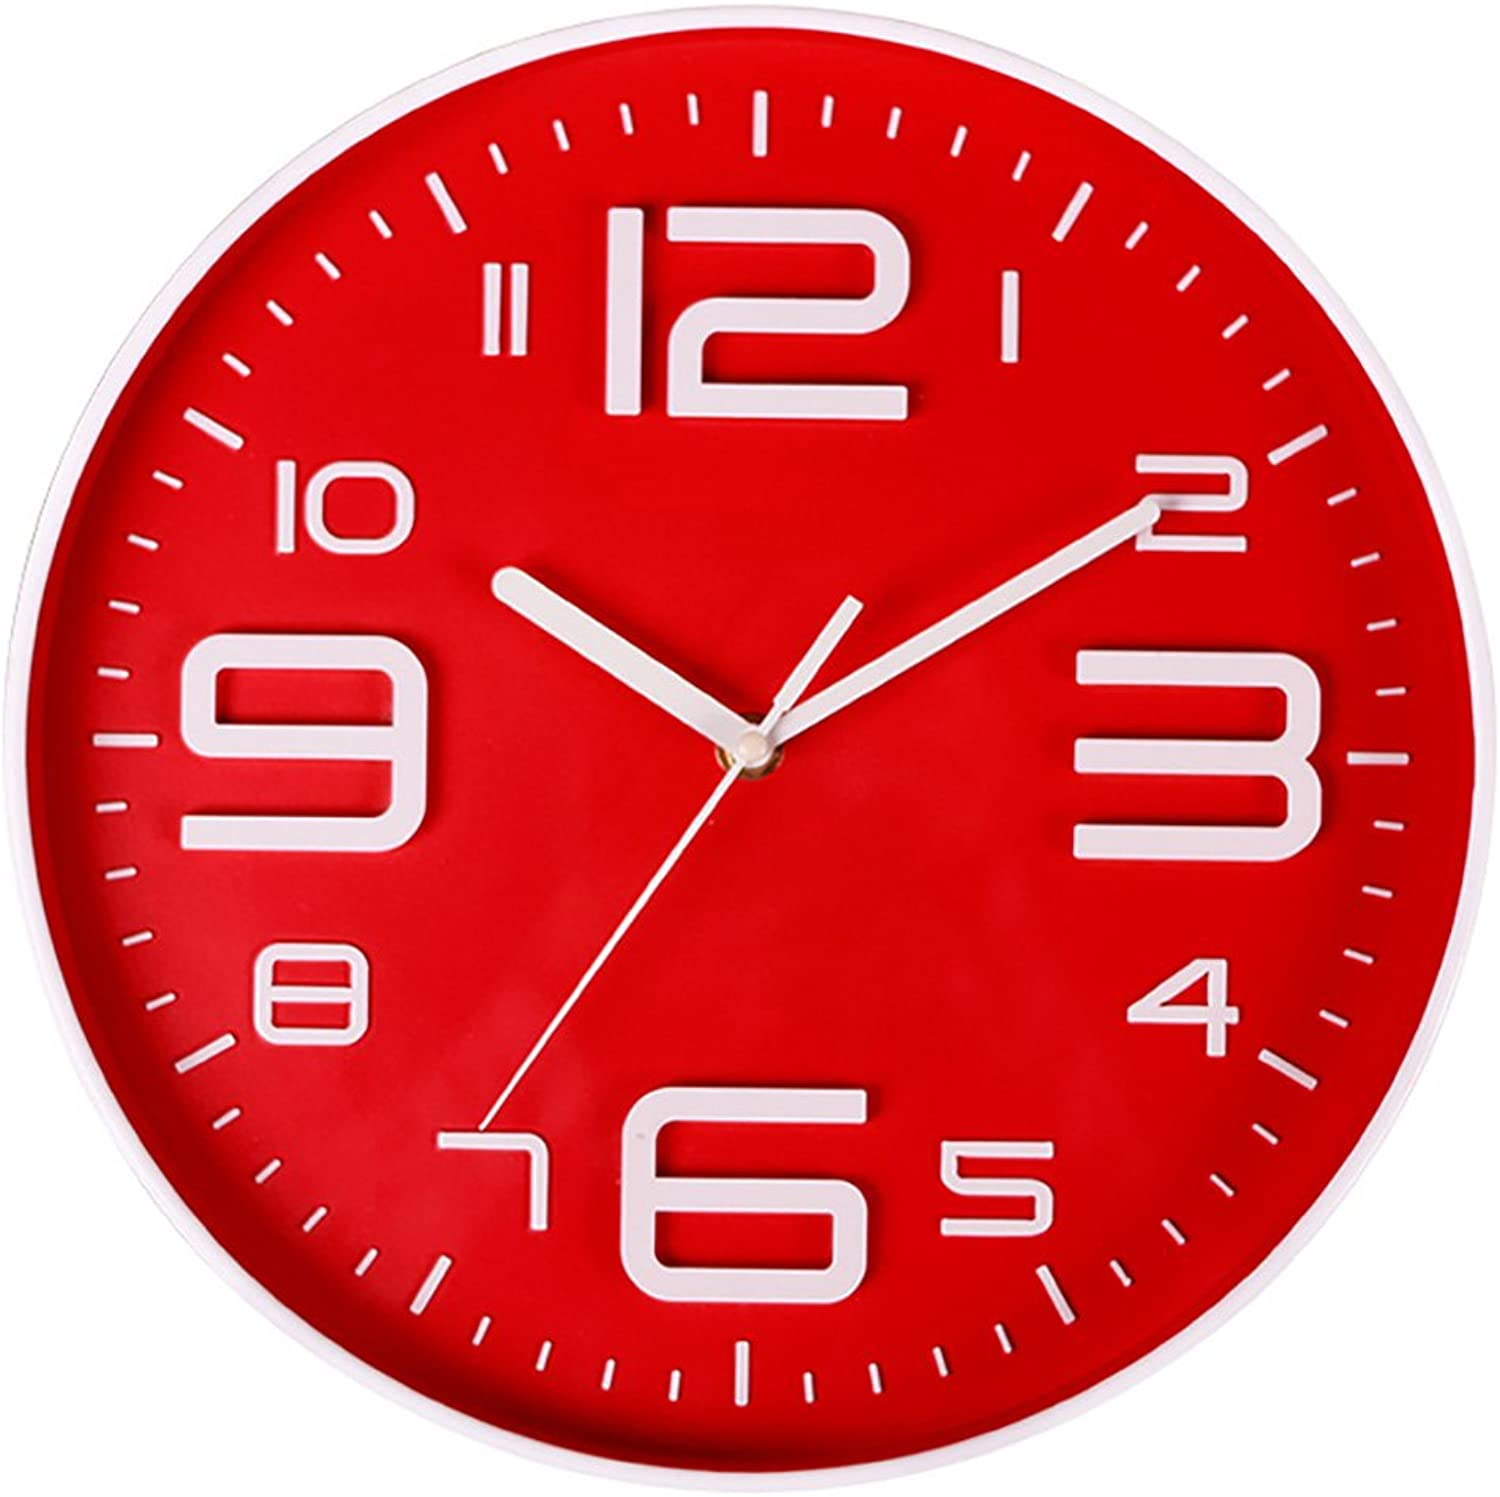 Aioloc Indoor Silent Movement Modern Wall Clock 10 Inch Big 3D Arabic Numerals Clocks Battery Operated Red